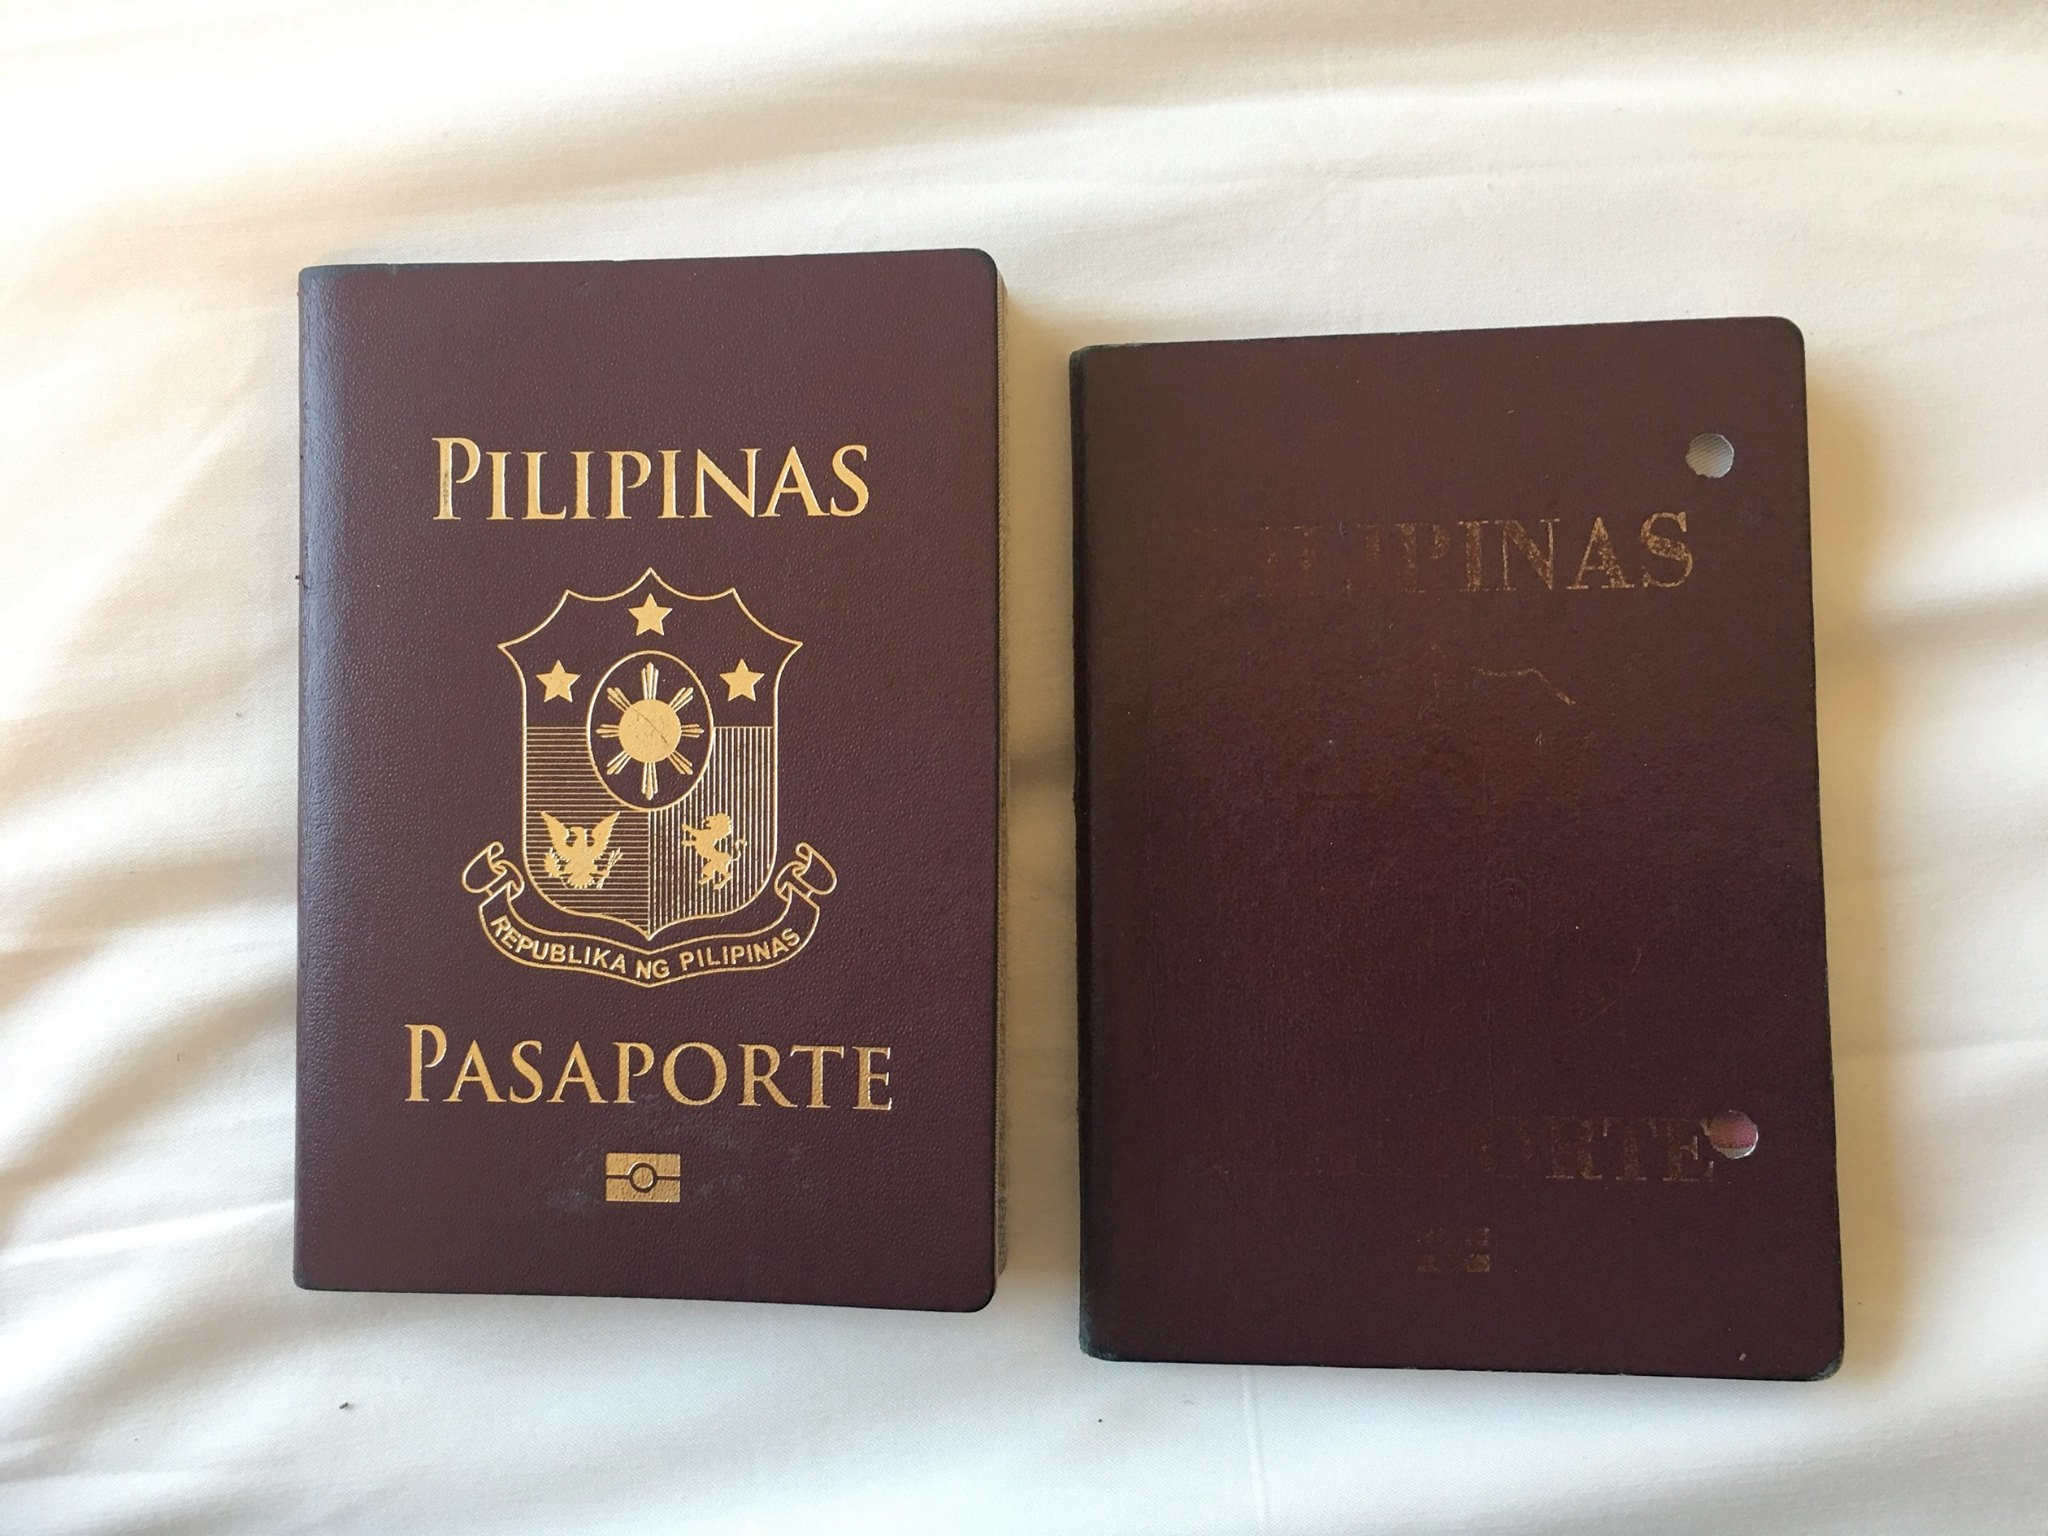 How To Apply For A Canadian Tourist Visa With Your Philippines Passport